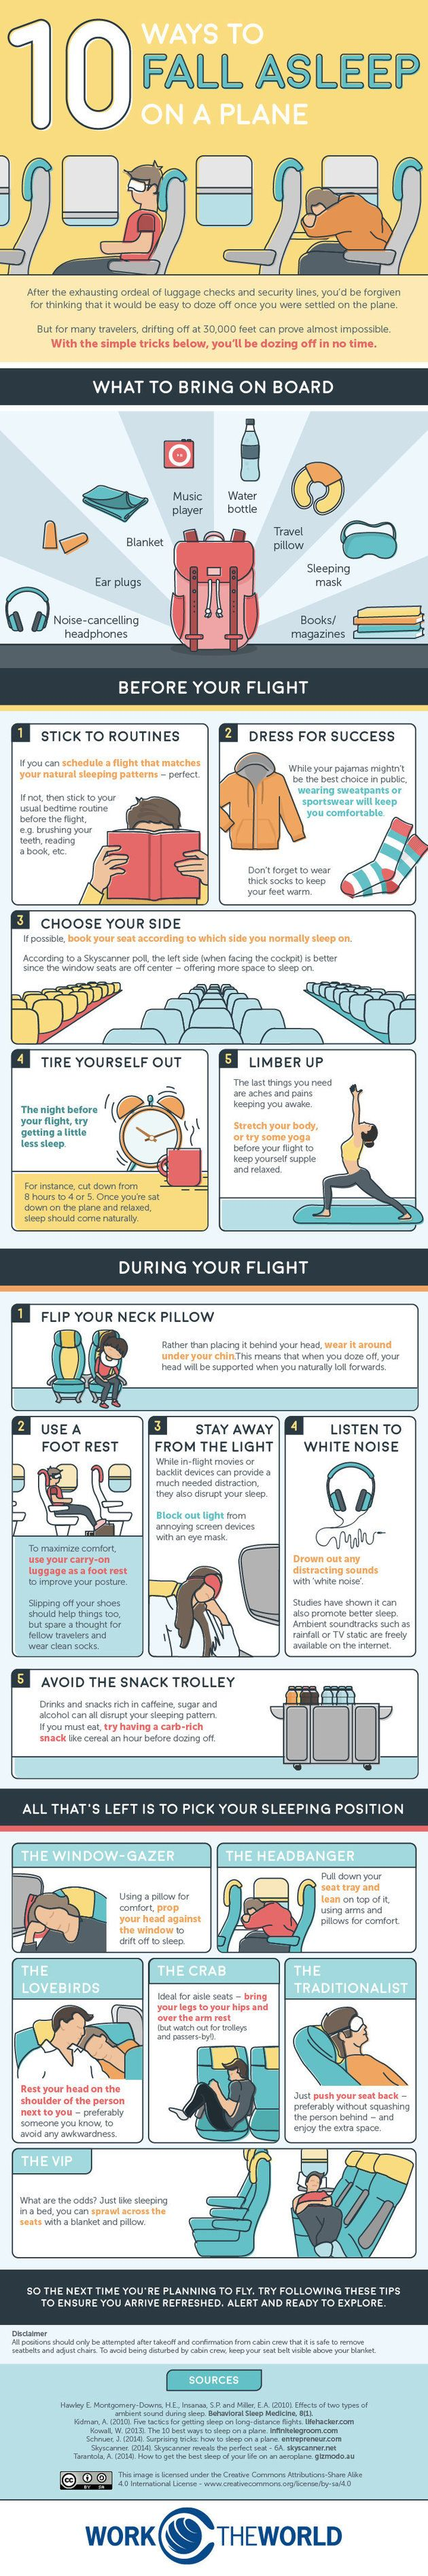 lmao i tried all of these when we flew red eye to Nova Scotia and I got maybe 1 hour of sleep